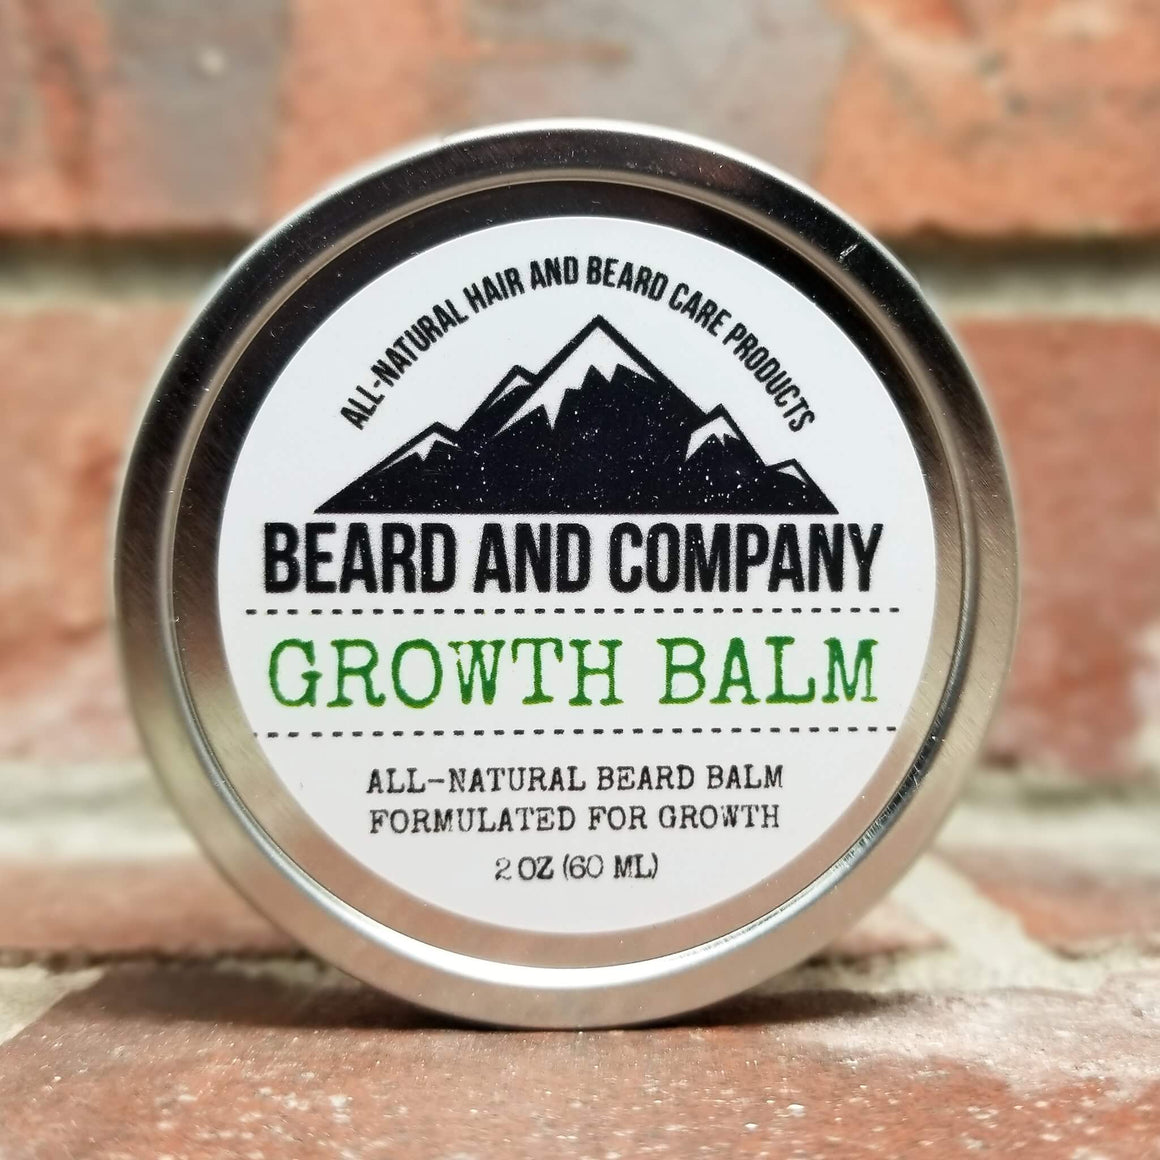 all natural beard balm with beard growth formula